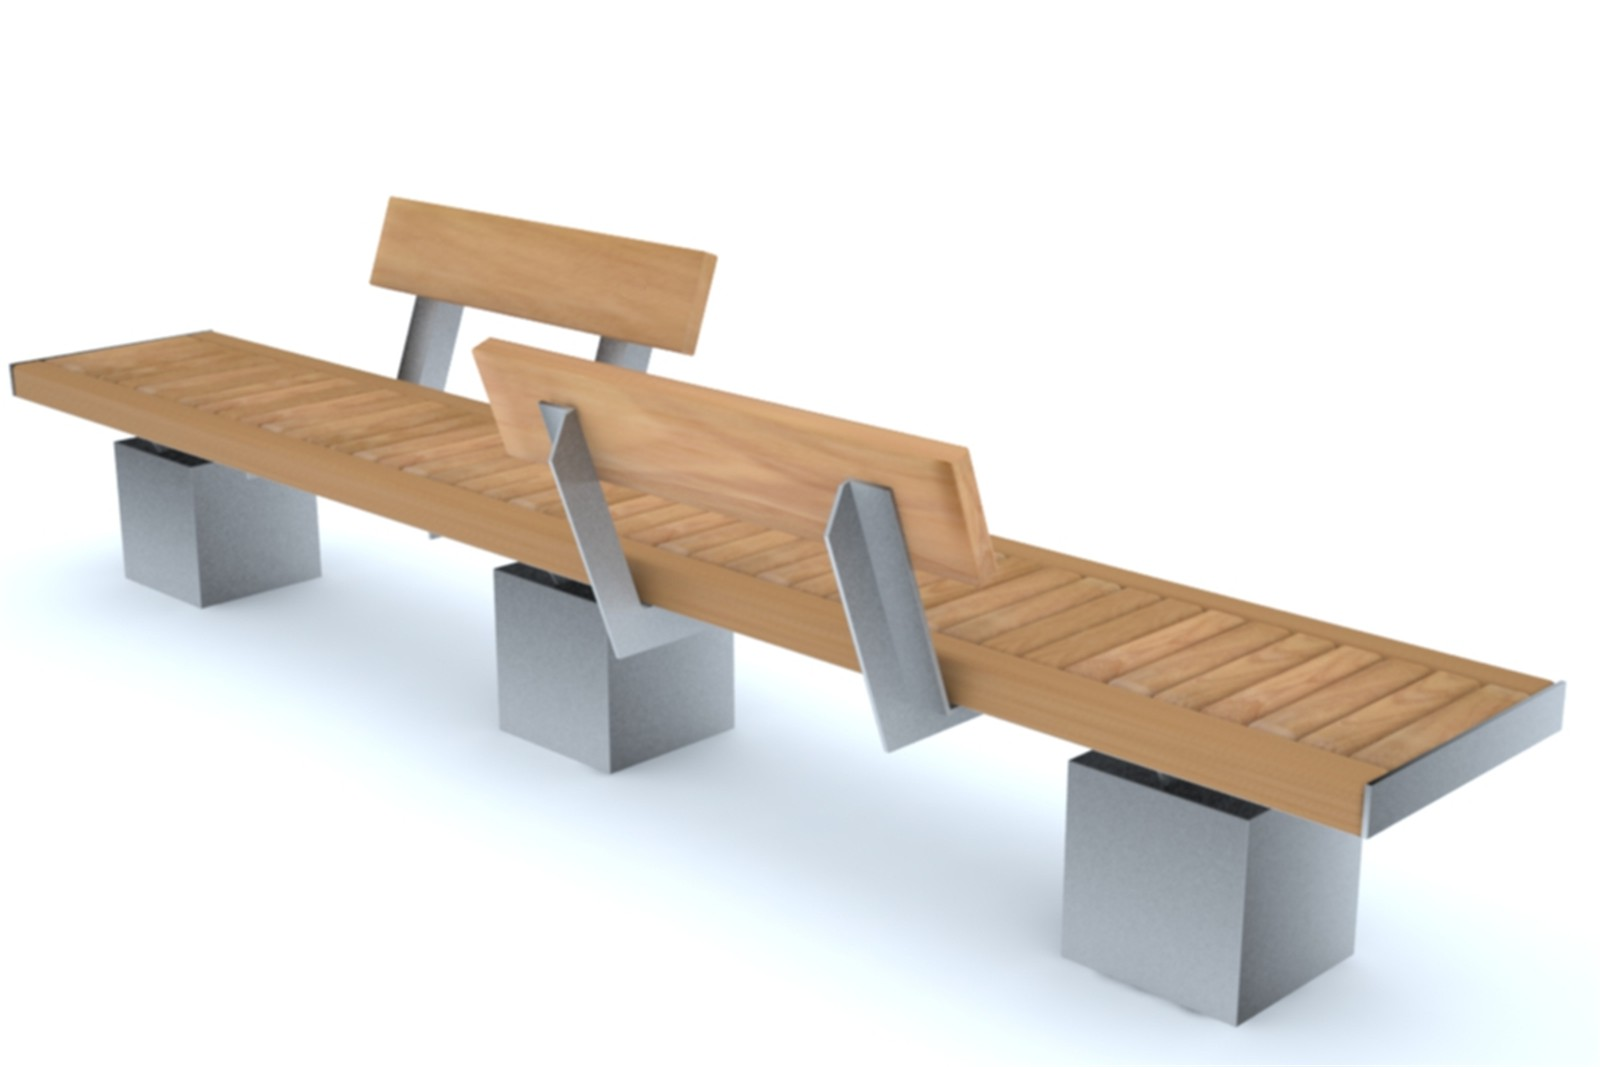 60ssh32 - Sheldon long bench with optional backrests